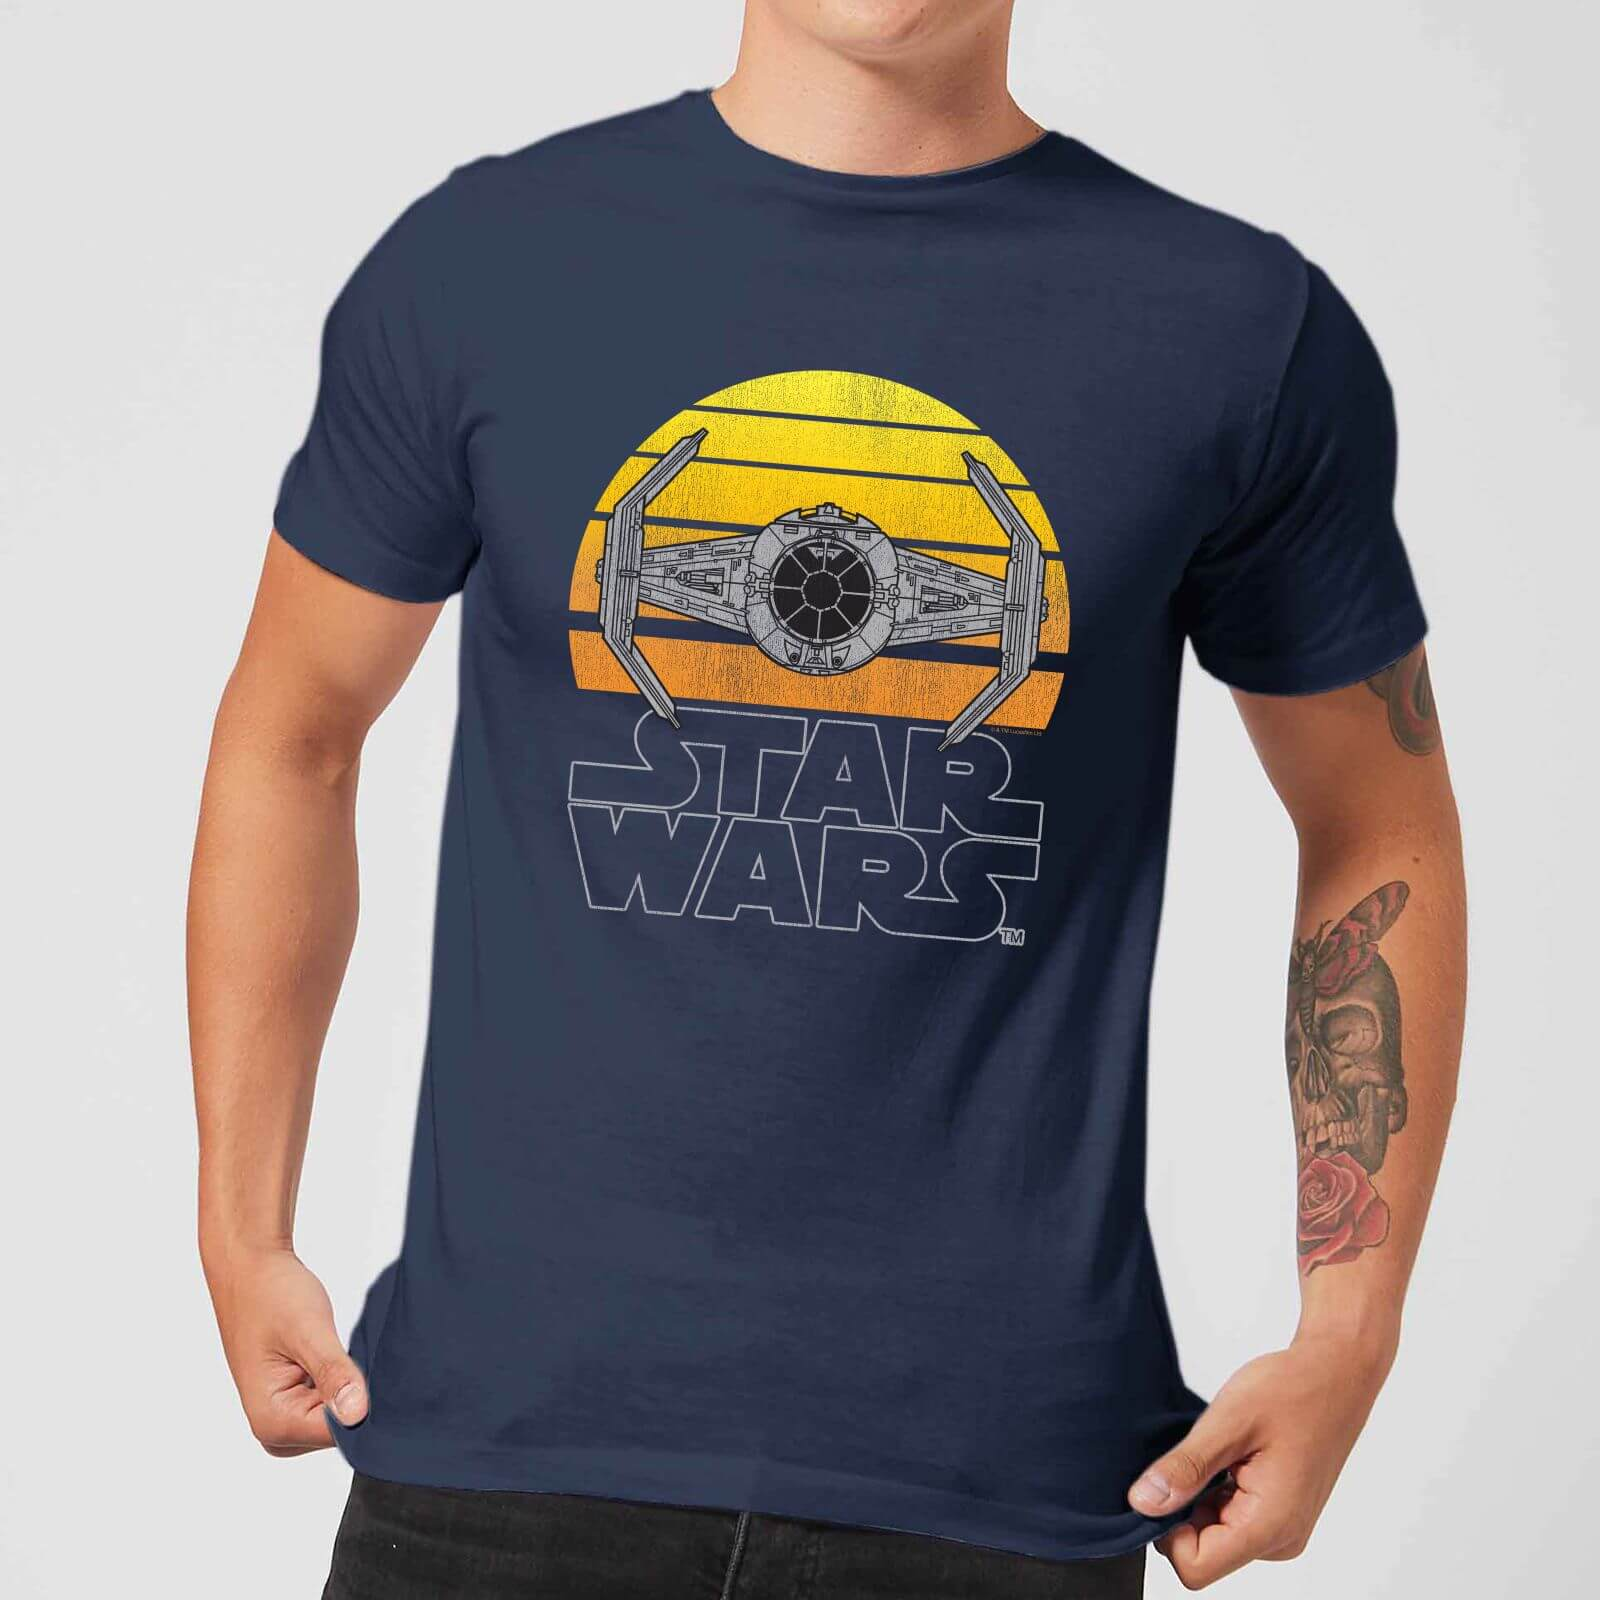 Star Wars Classic Sunset Tie Herren T Shirt Navy Blau